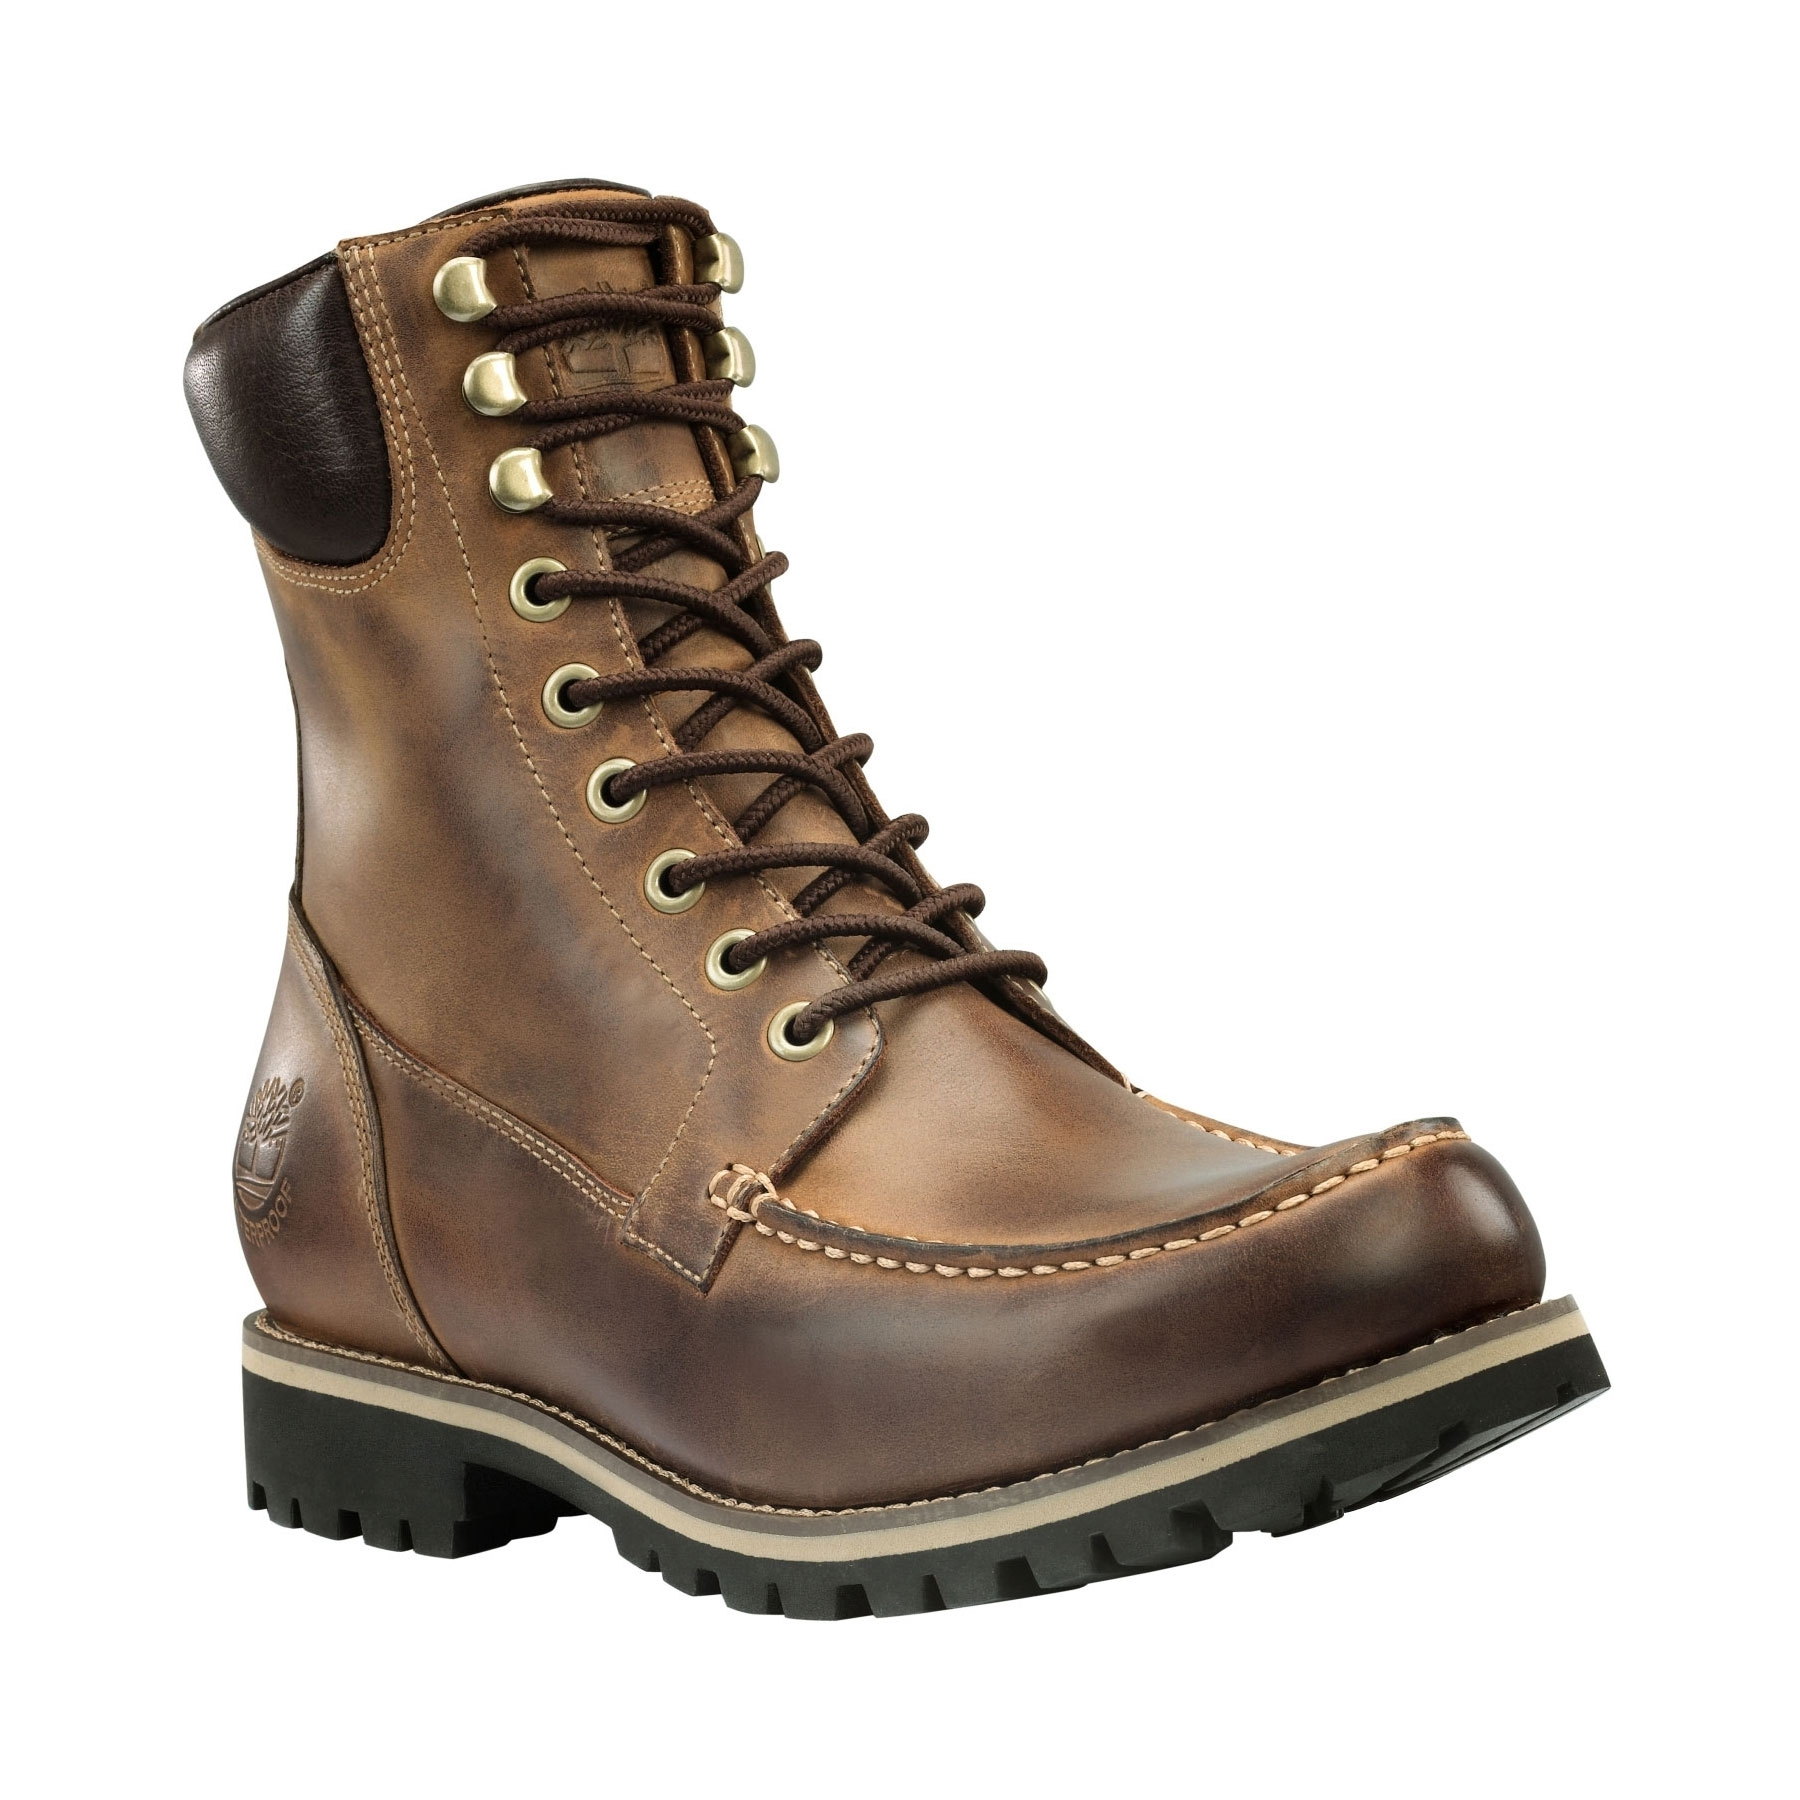 Enhance the beauty of your leg with women's walking boots